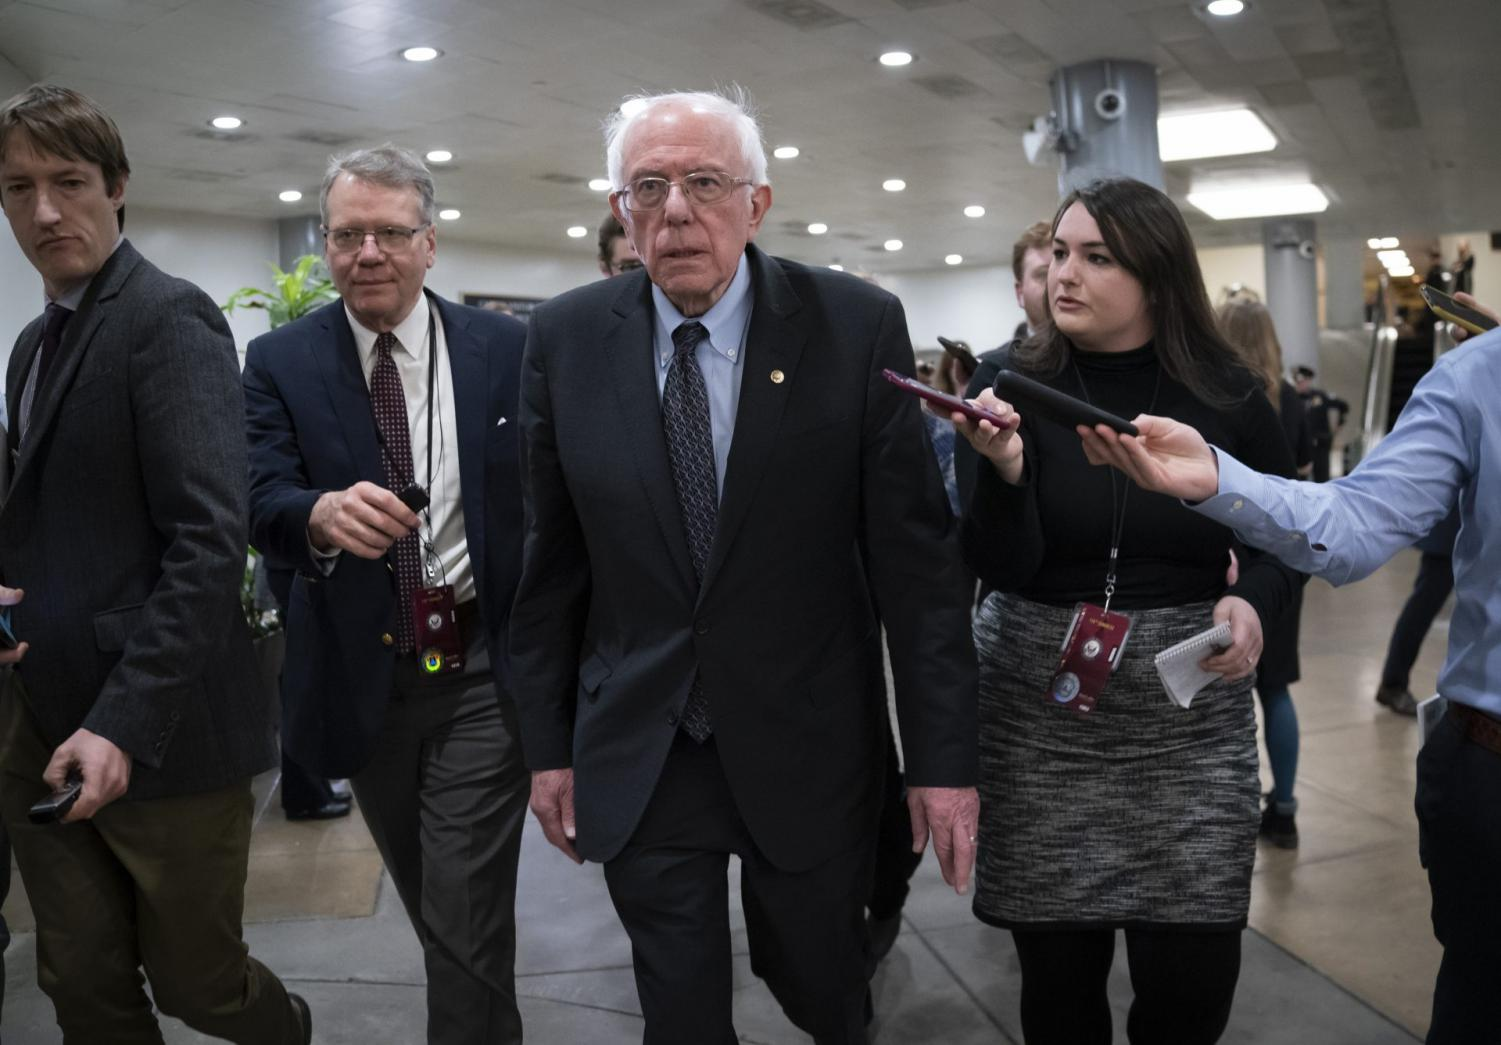 Democratic presidential candidate, Sen. Bernie Sanders, I-Vt., talks to reporters just after the start of the impeachment trial of President Donald Trump on charges of abuse of power and obstruction of Congress, at the Capitol in Washington, Thursday, Jan. 16, 2020.